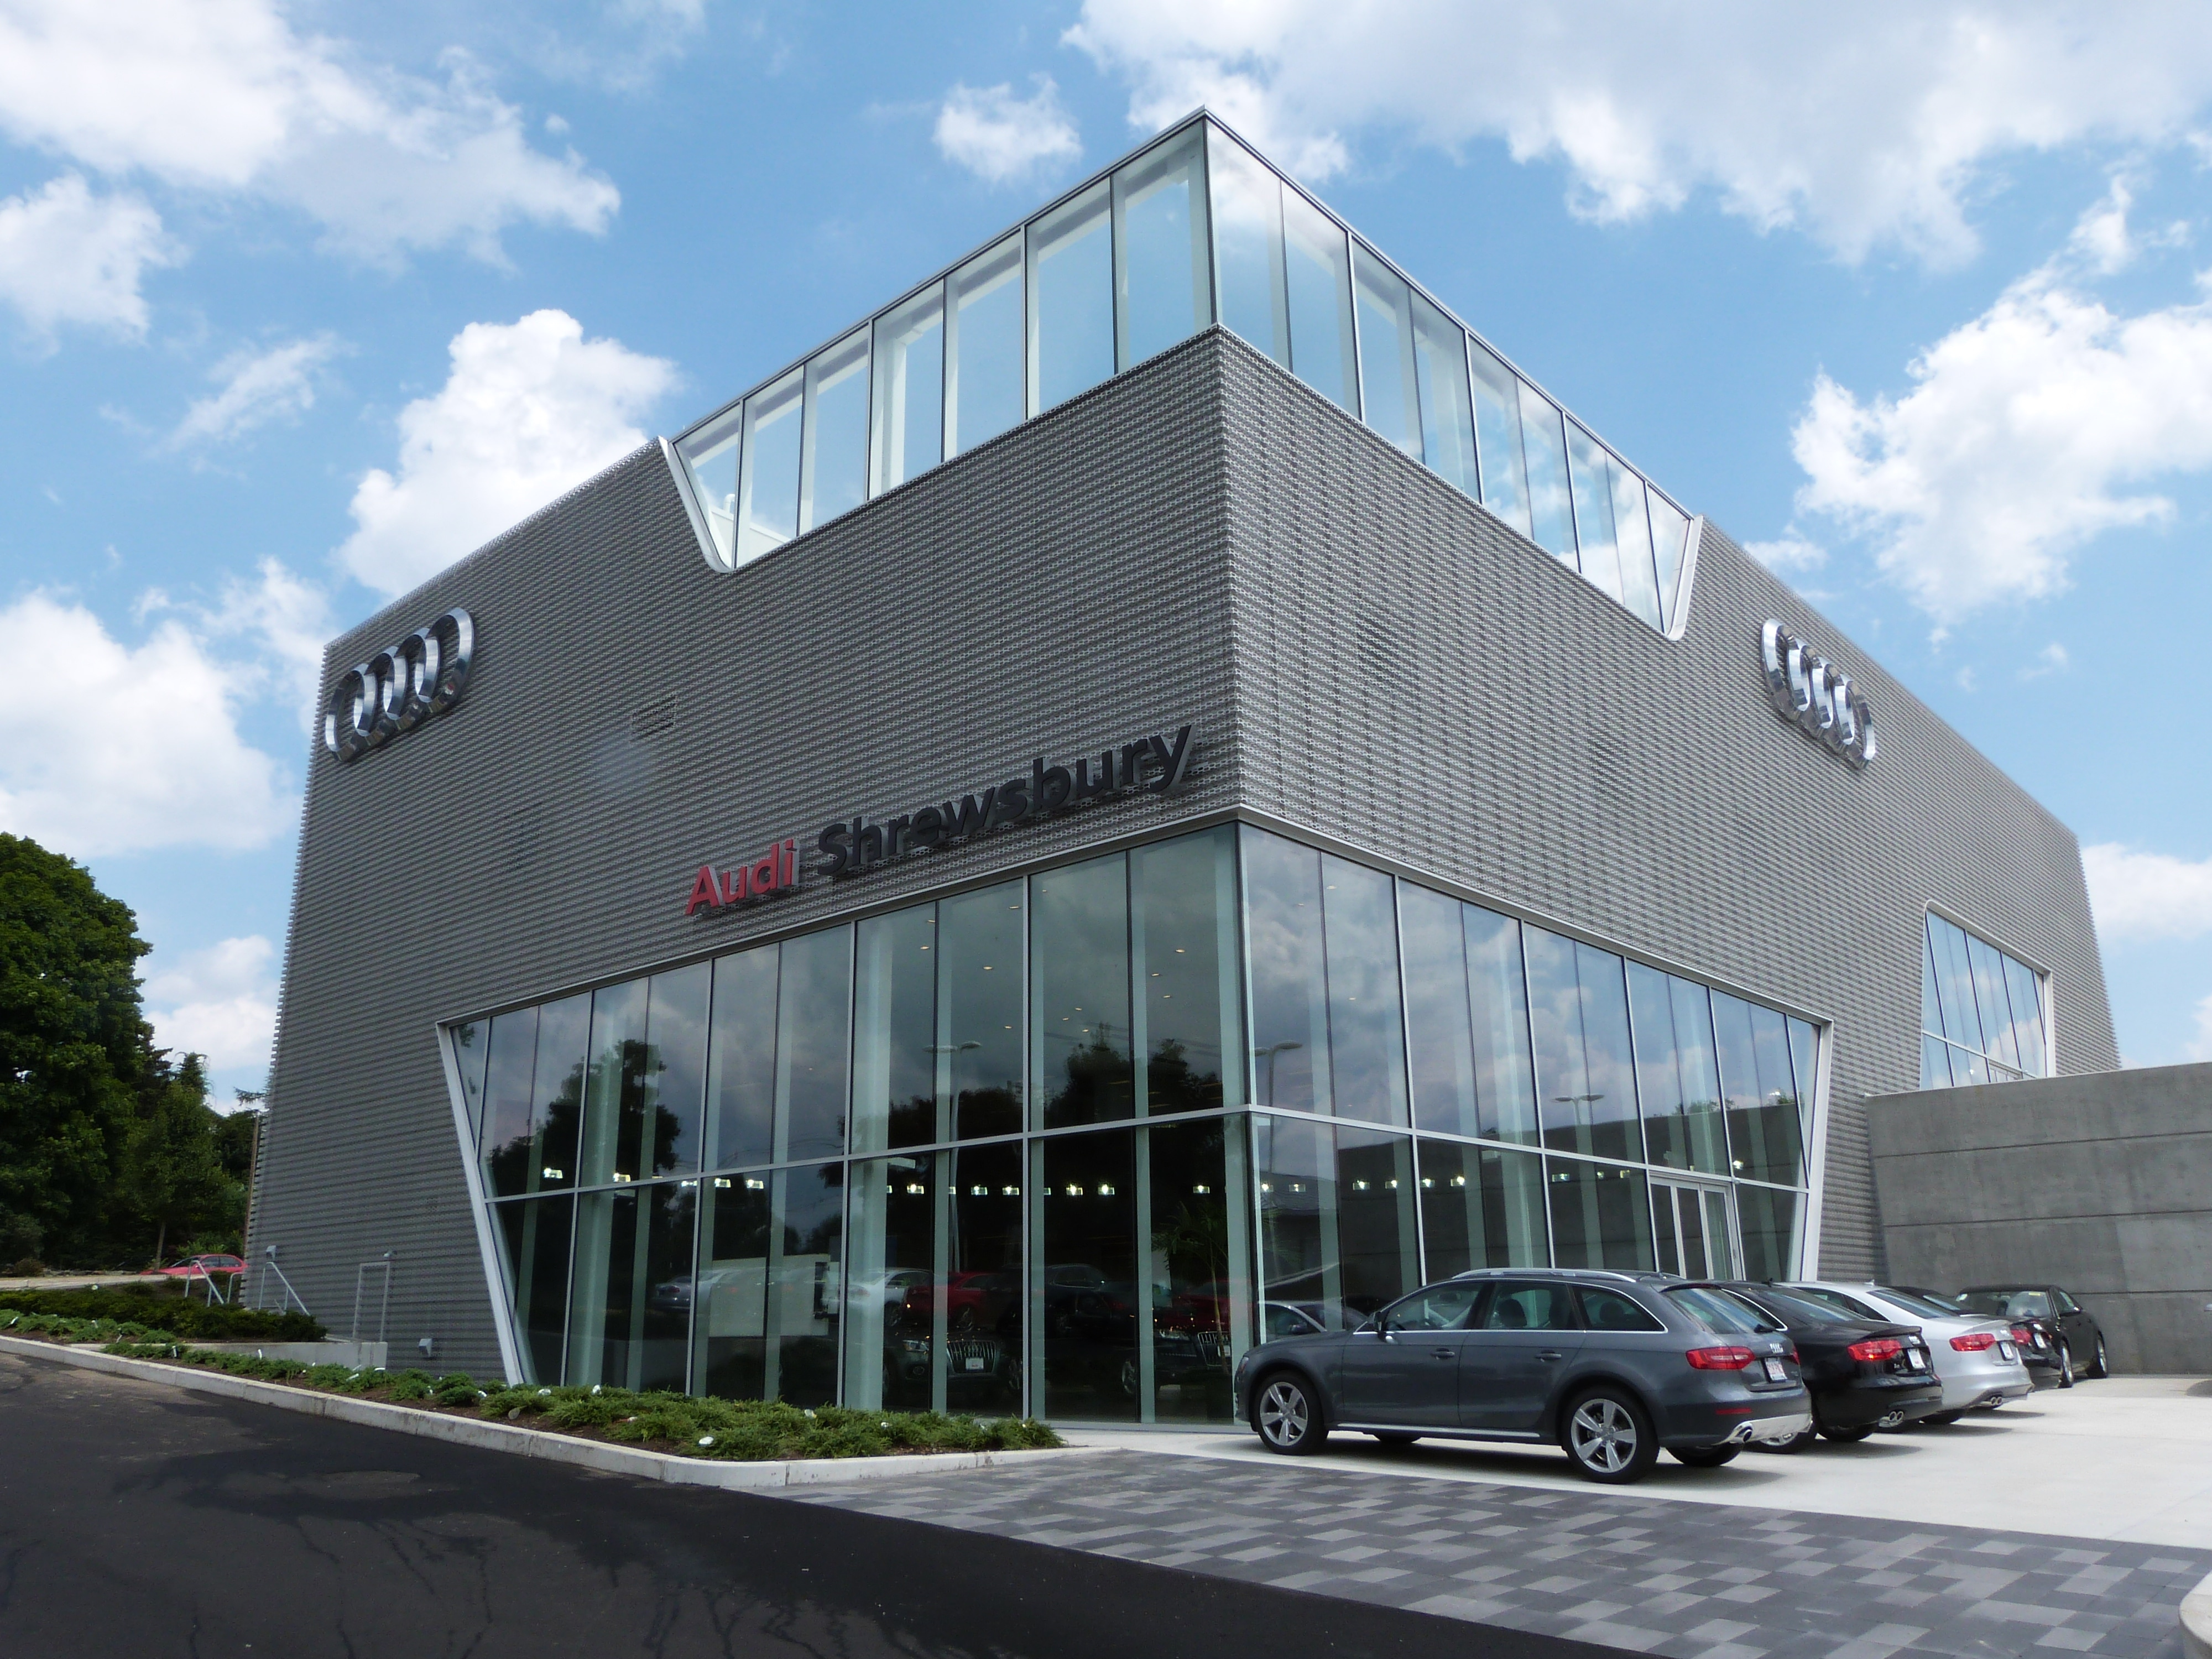 about audi shrewsbury new audi used car dealer serving worcester marlborough and westborough. Black Bedroom Furniture Sets. Home Design Ideas